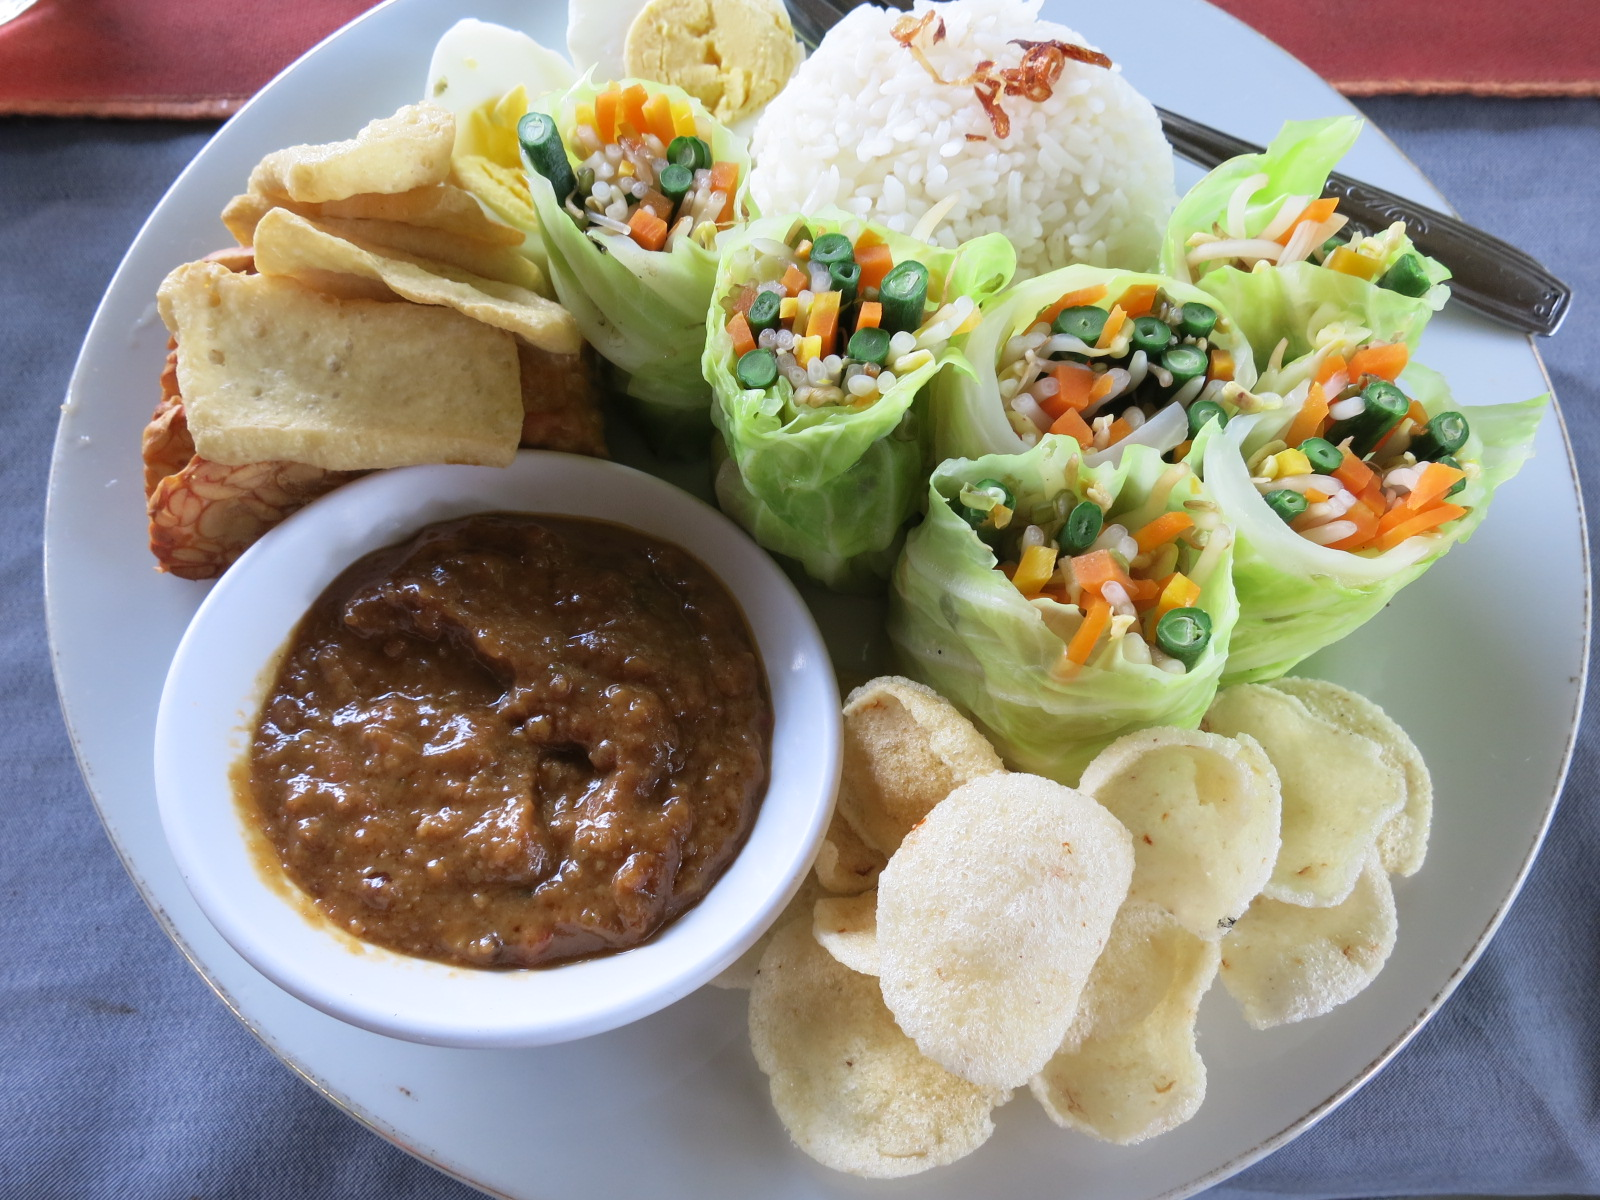 Gado gado at Happy Warung